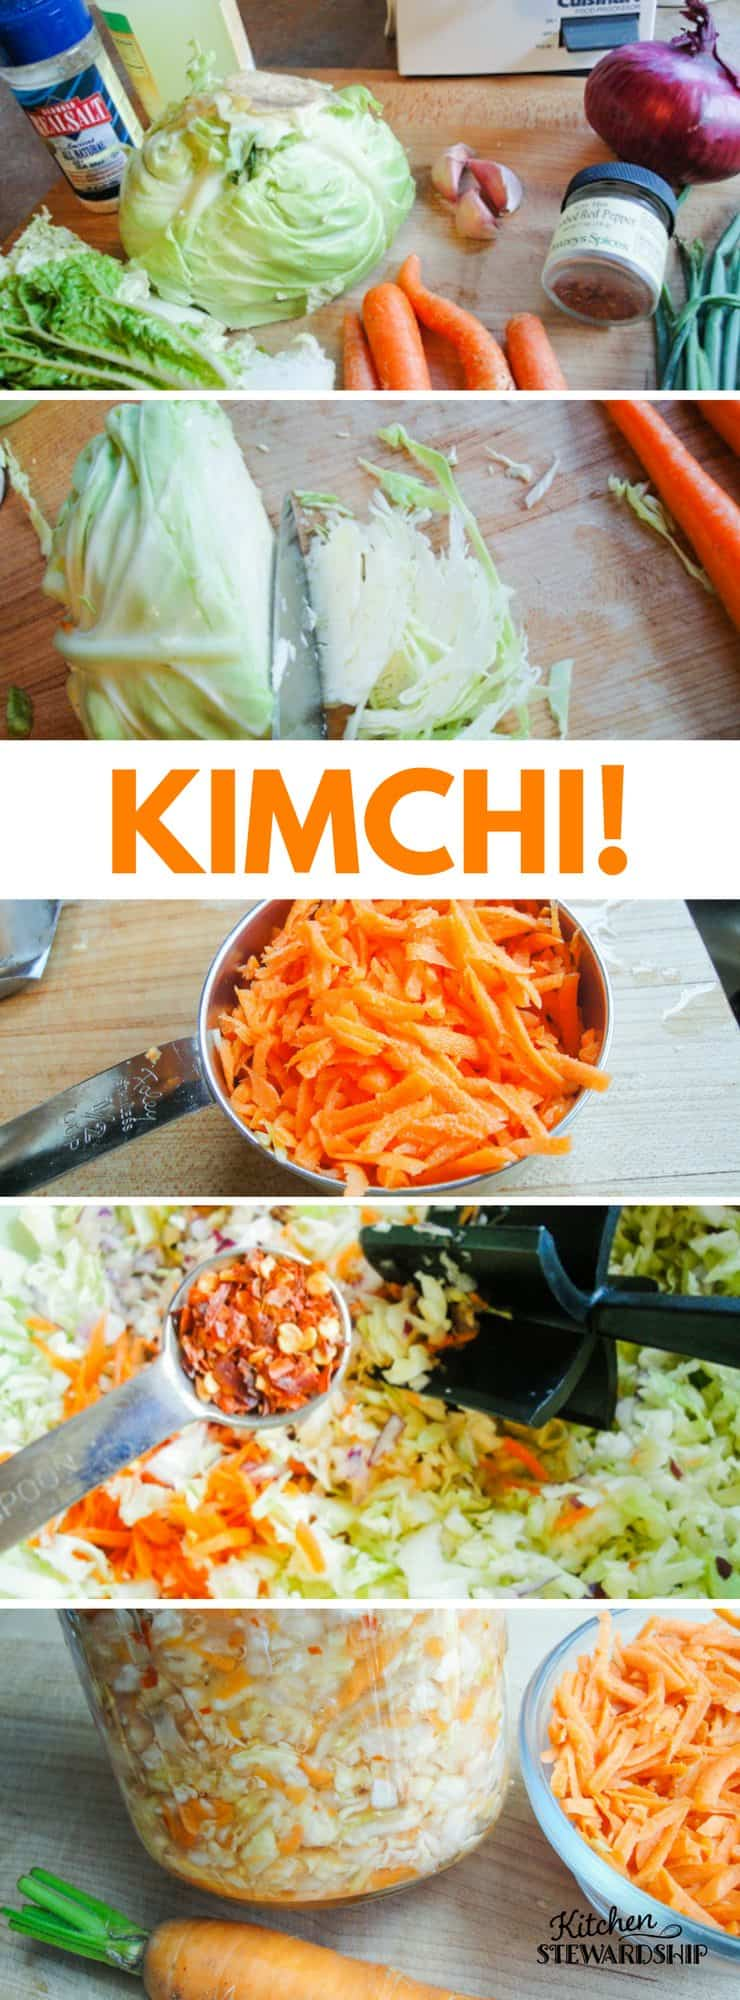 Fermenting vegetables can be easy and save you money. Check out this easy homemade kimchi recipe.